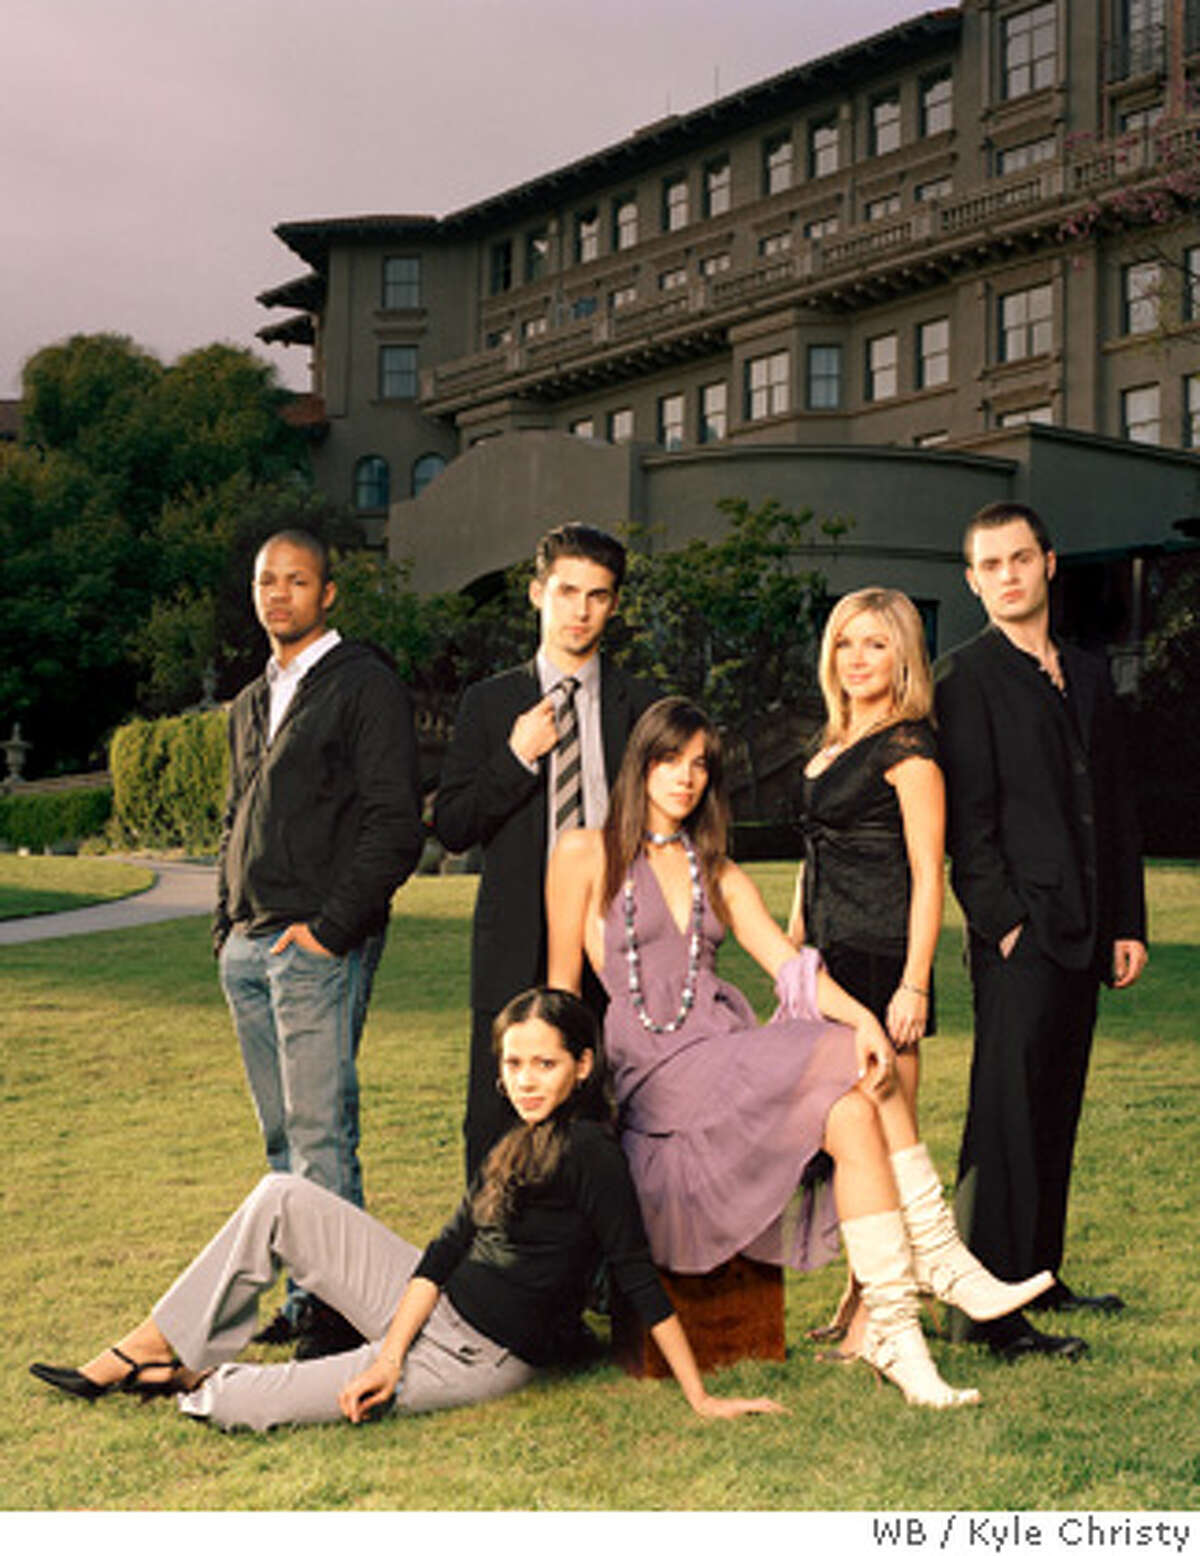 The Bedford Diaries Pictured (front l-r): Victoria Cartagena as Zoe Lopez, Tiffany Dupont as Sarah Gregory (back l-r) Ernest Waddell as Lee Hemingway, Milo Ventimiglia as Richard Thorne III, Corri English as Natalie Dykstra, Penn Badgley as Owen Gregory Credit: � The WB / Kyle Christy